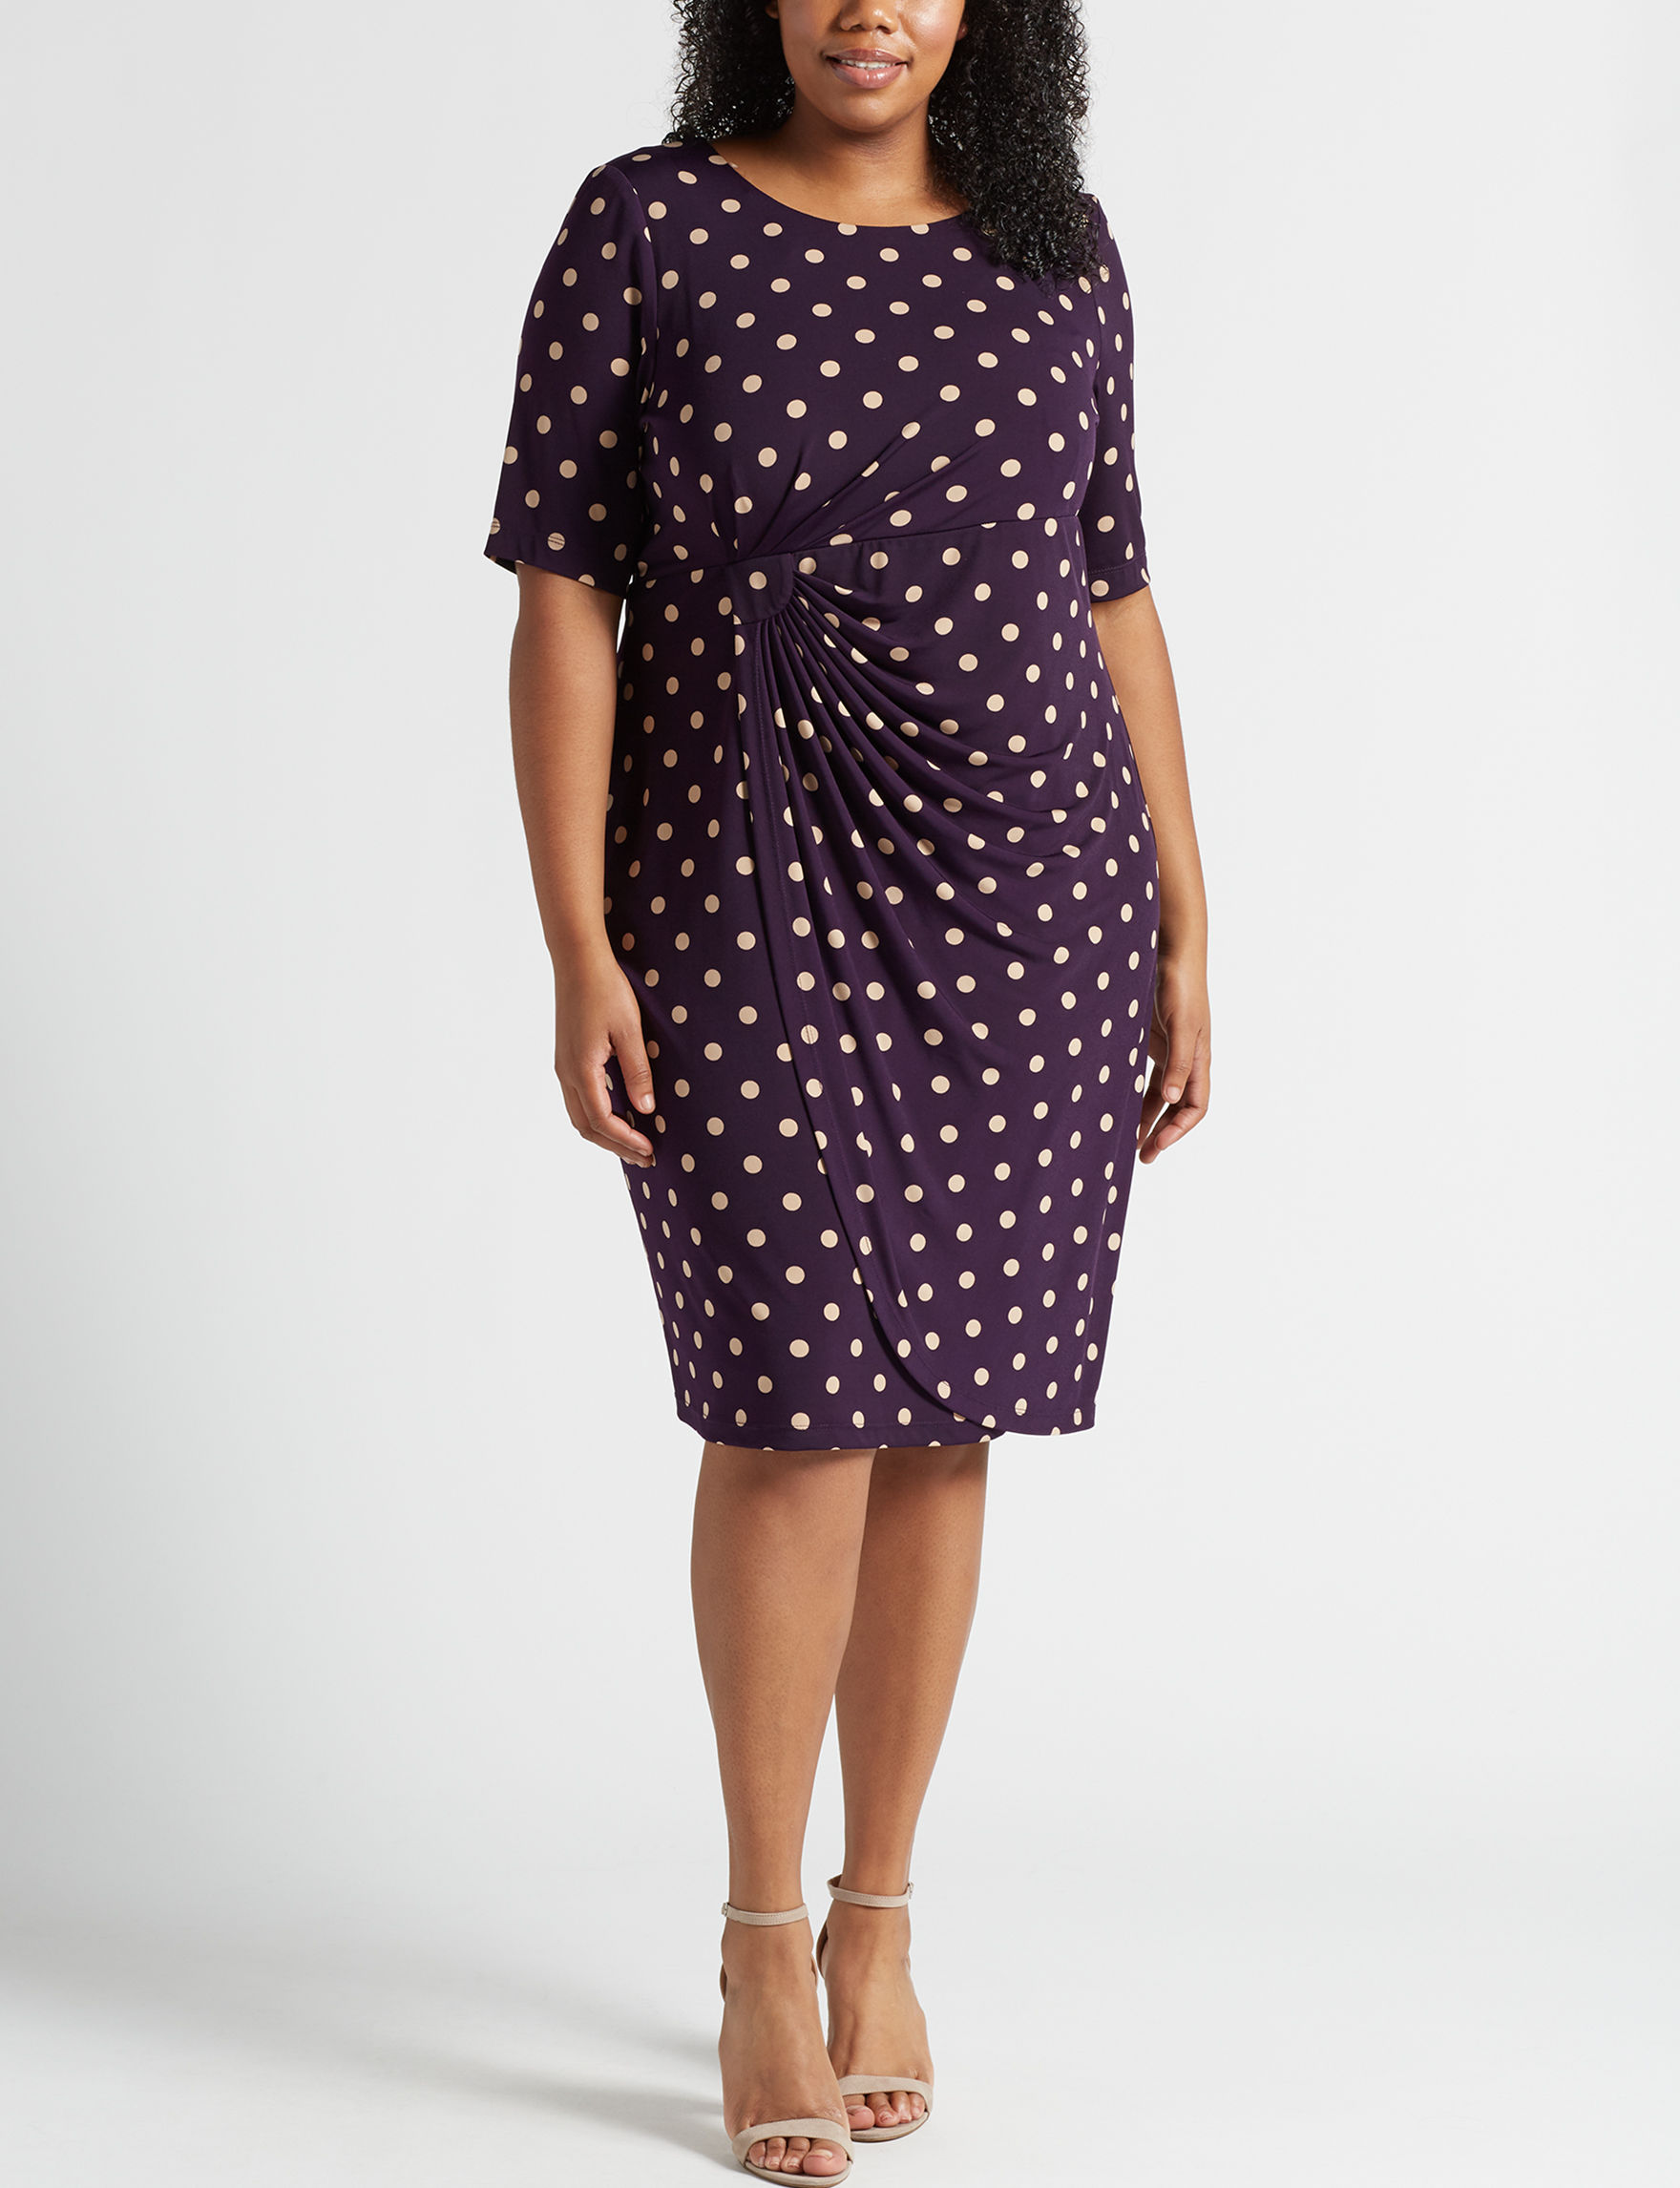 Connected Amethyst Evening & Formal Sheath Dresses